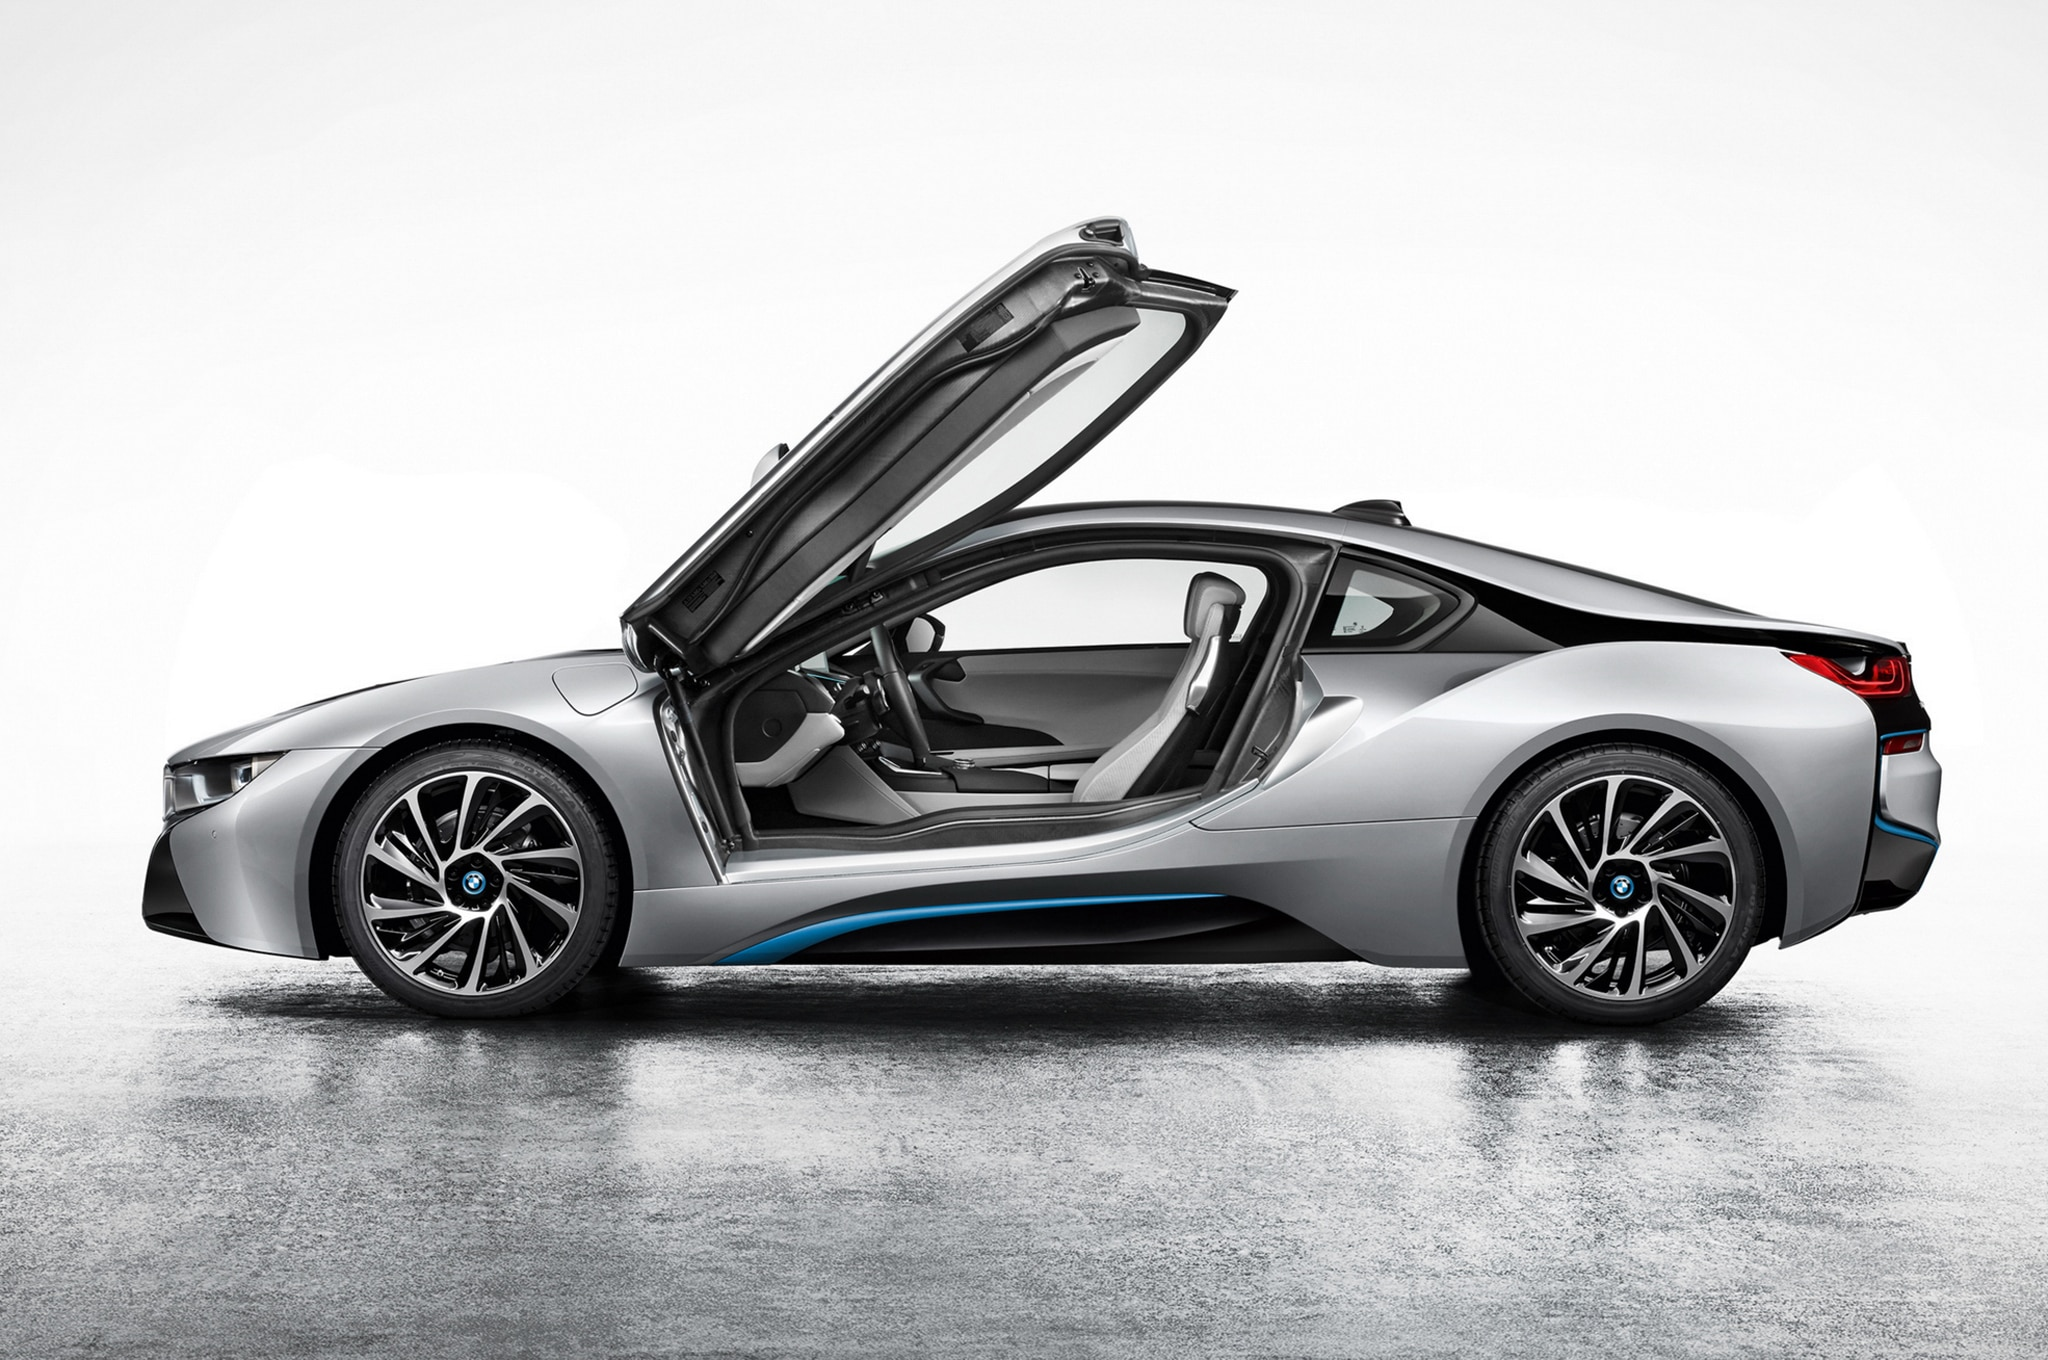 2014 Bmw I8 Profile1